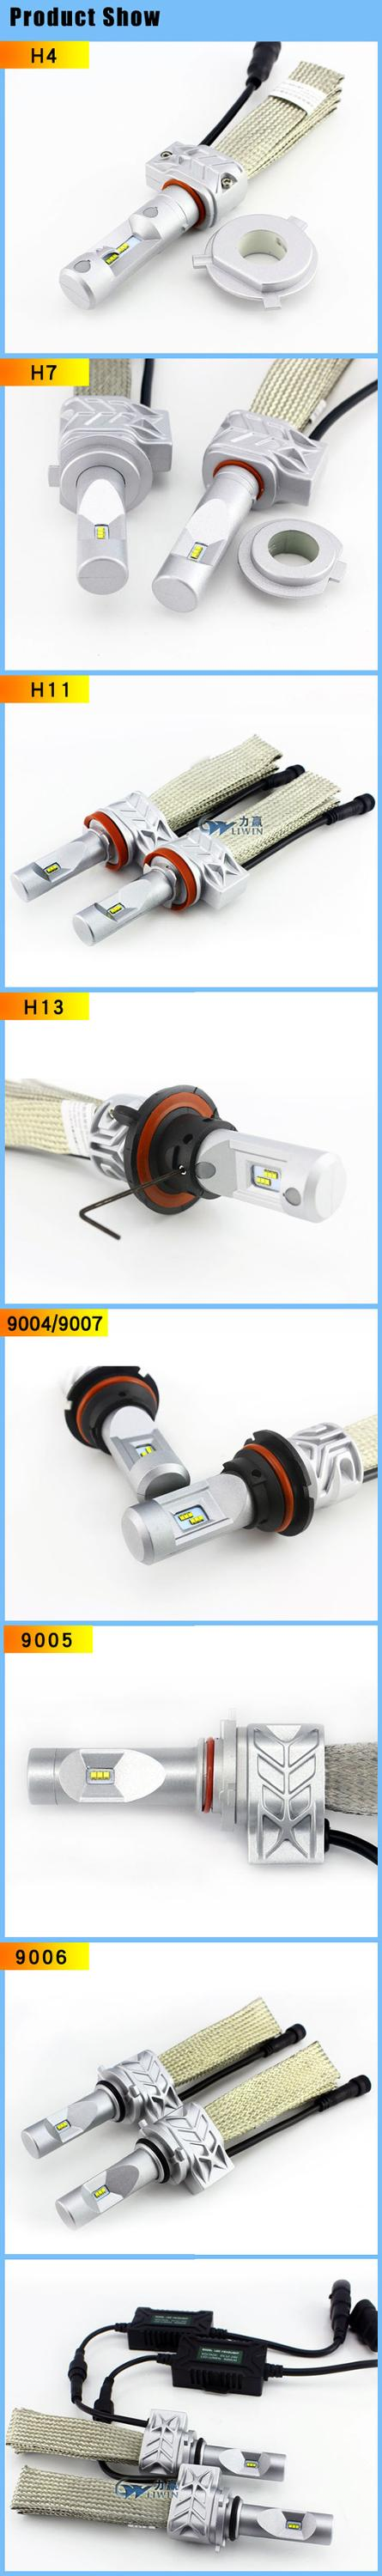 led headlight.jpg